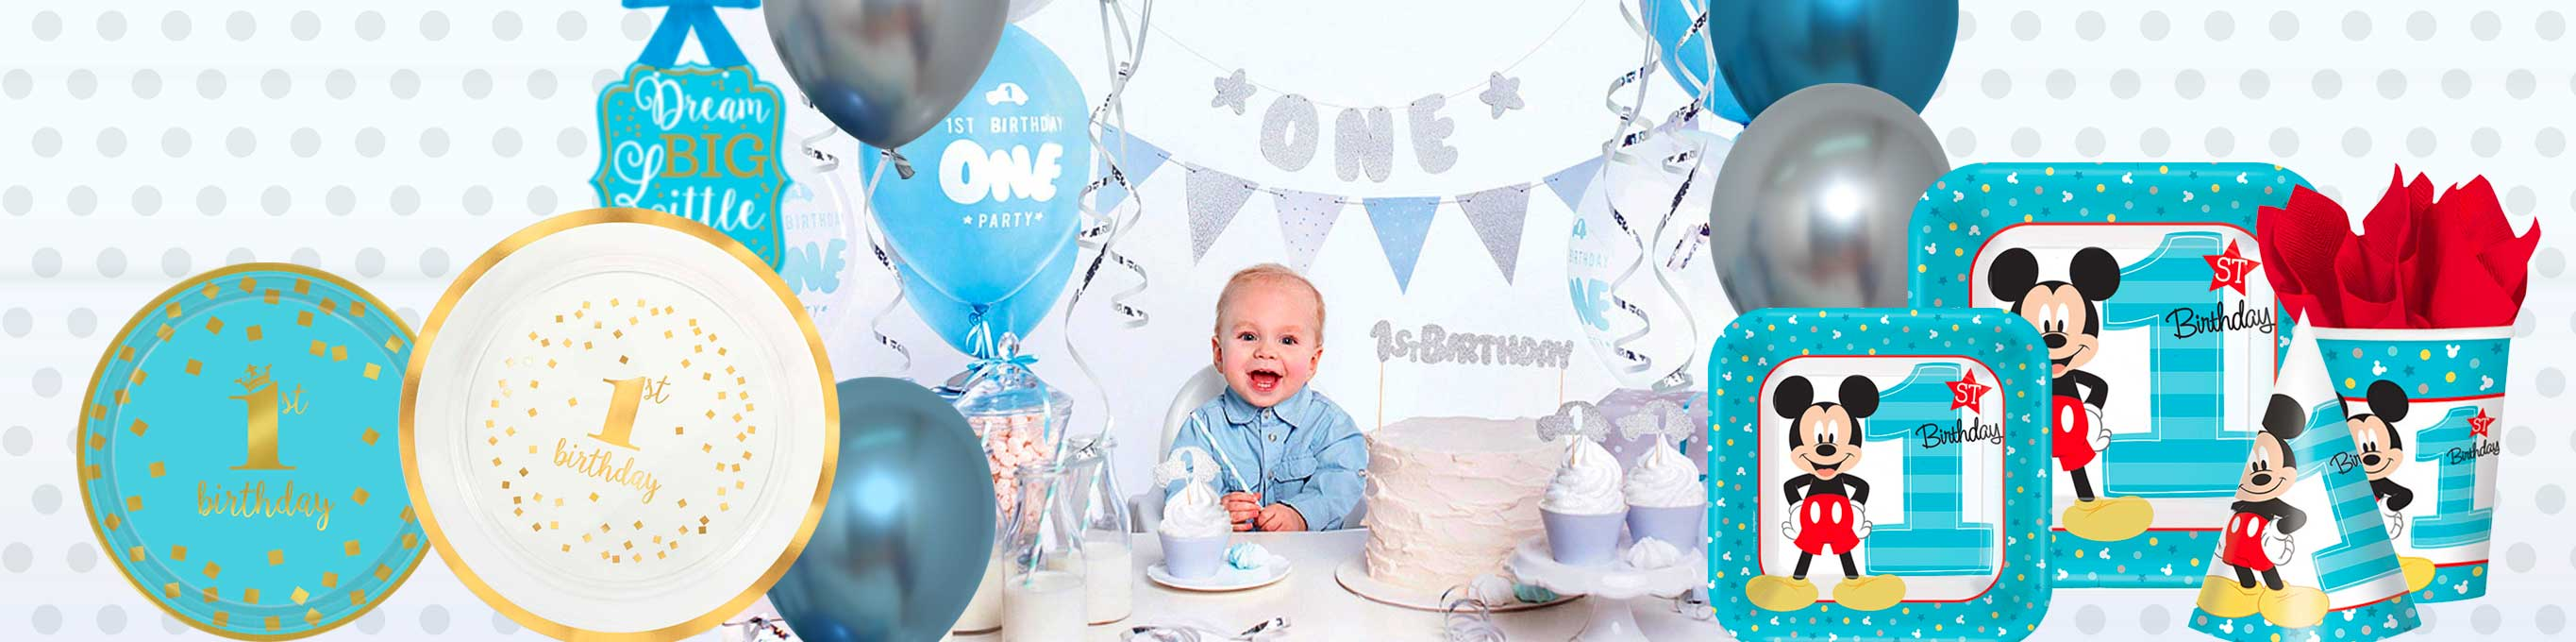 6 Most Favorite Boys' 1st Birthday Party Themes: The Party Supplies You Will Need To Celebrate - MyPartyCentre